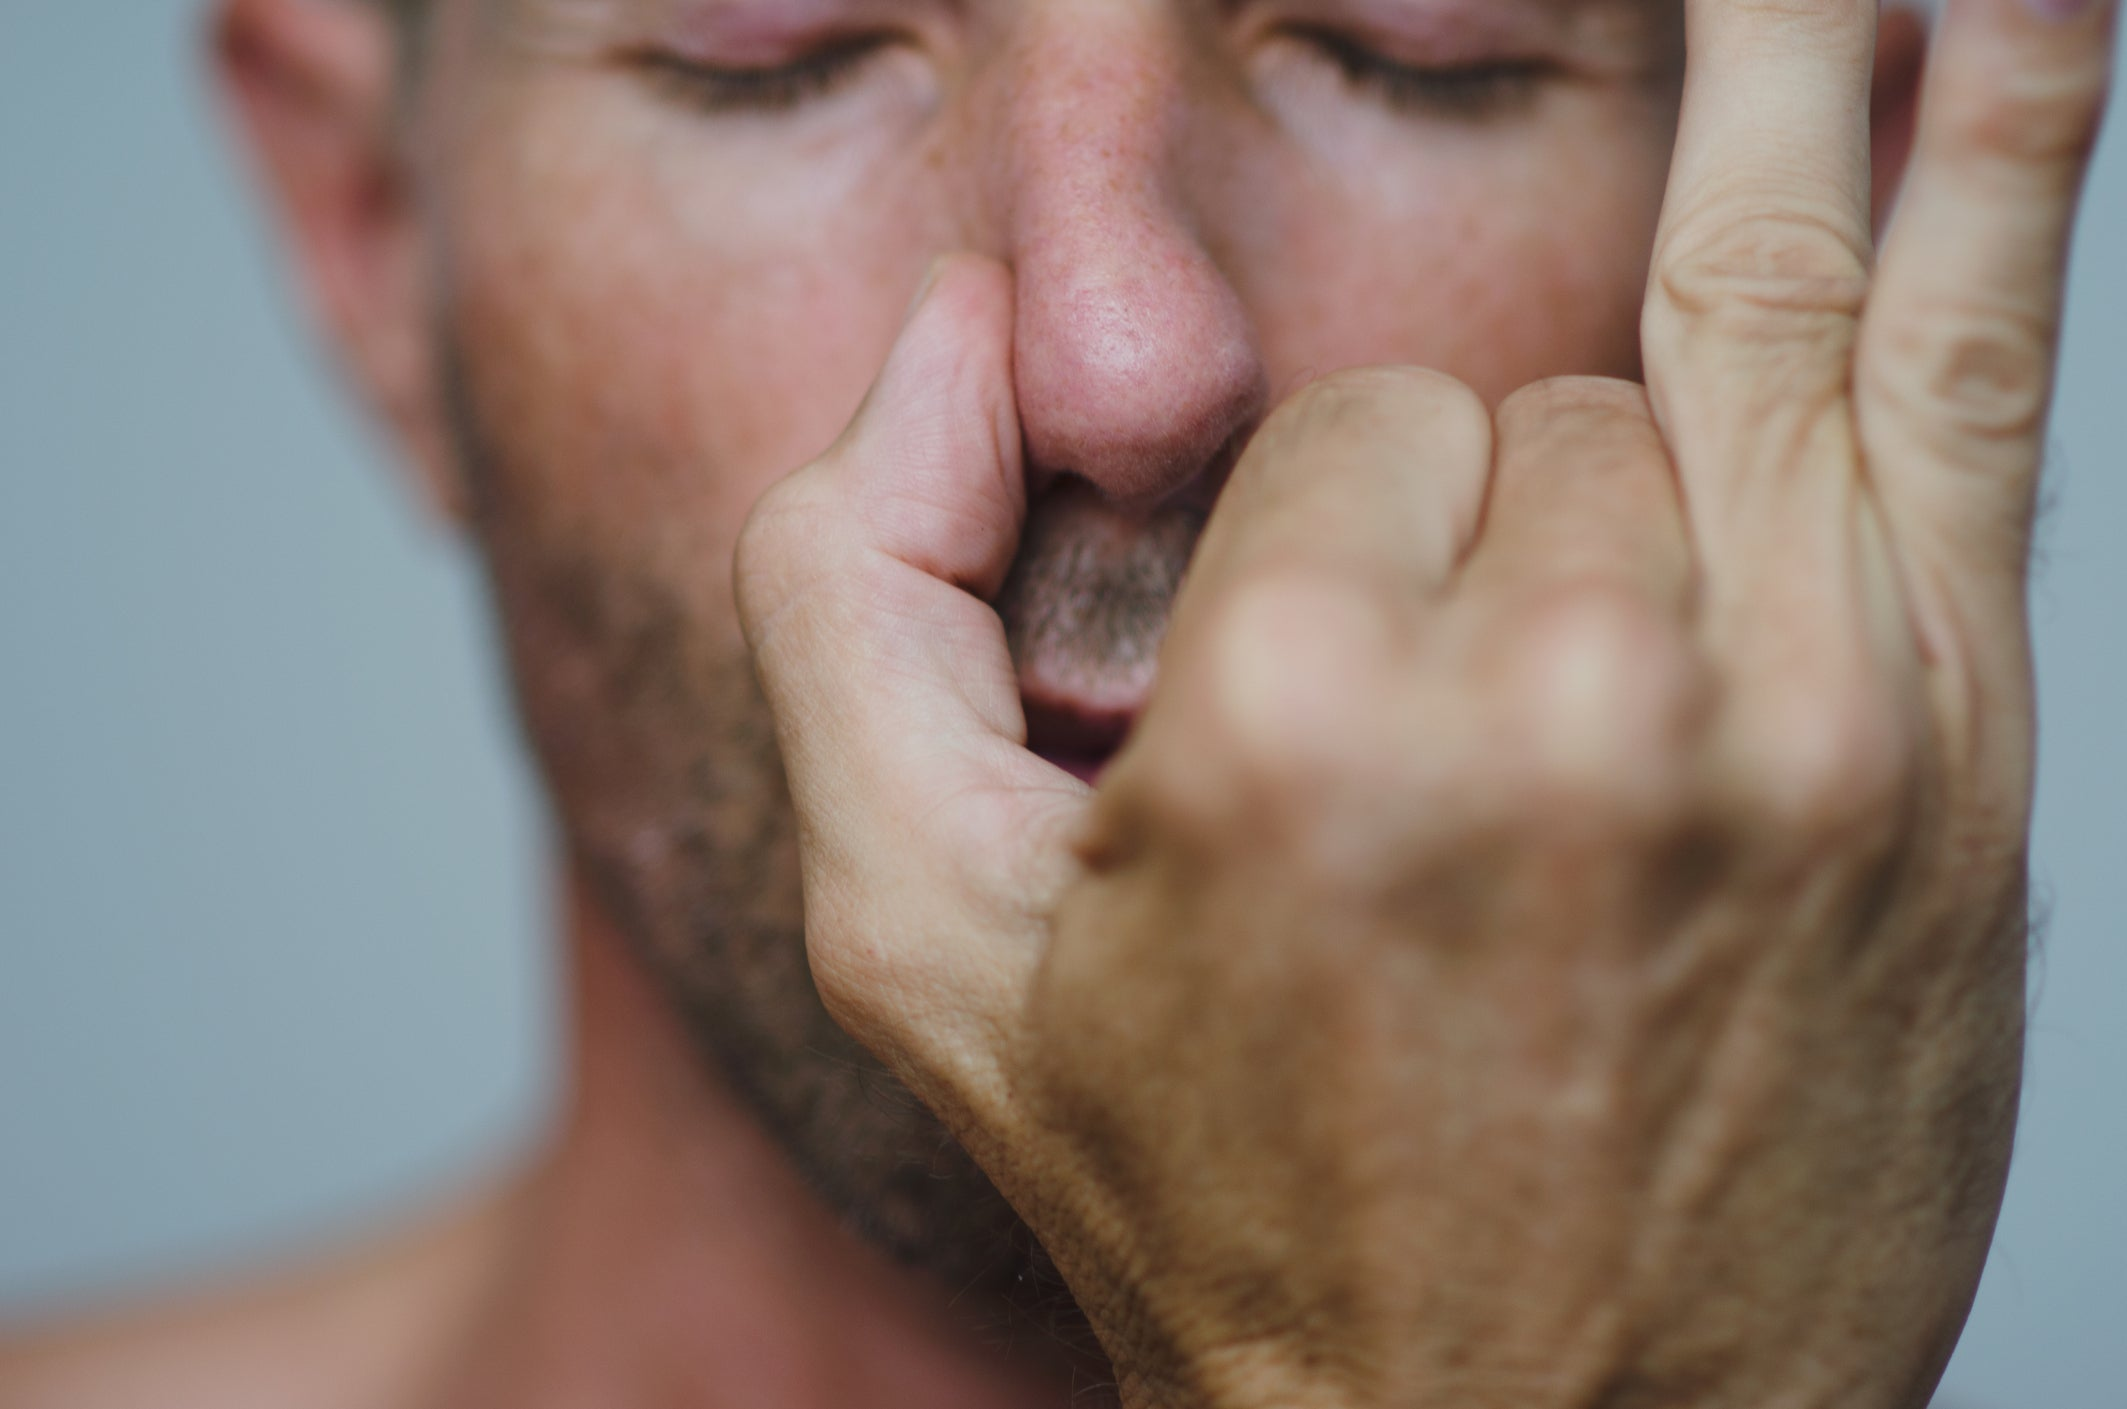 Proper Breathing Brings Better Health - Scientific American